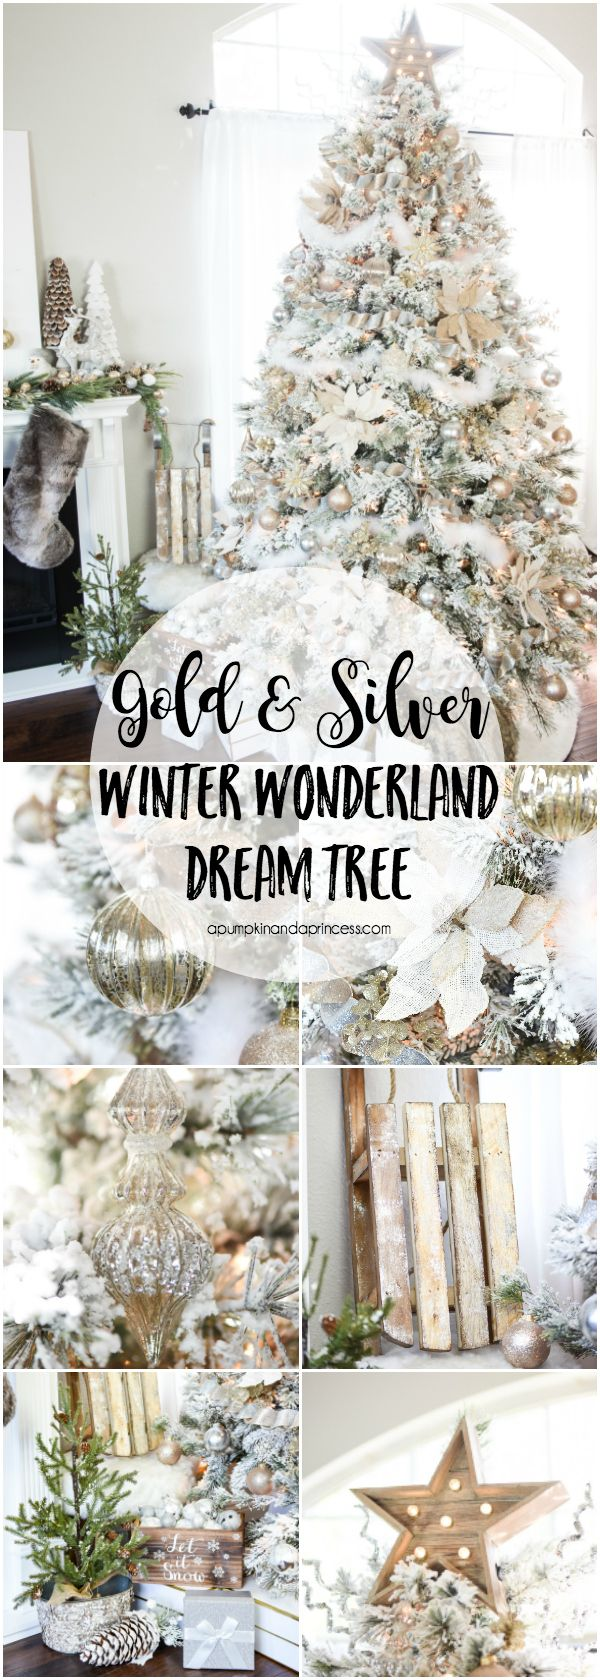 how to decorate a flocked gold and silver winter wonderland christmas tree michaels dream tree challenge - Michaels Christmas Hours